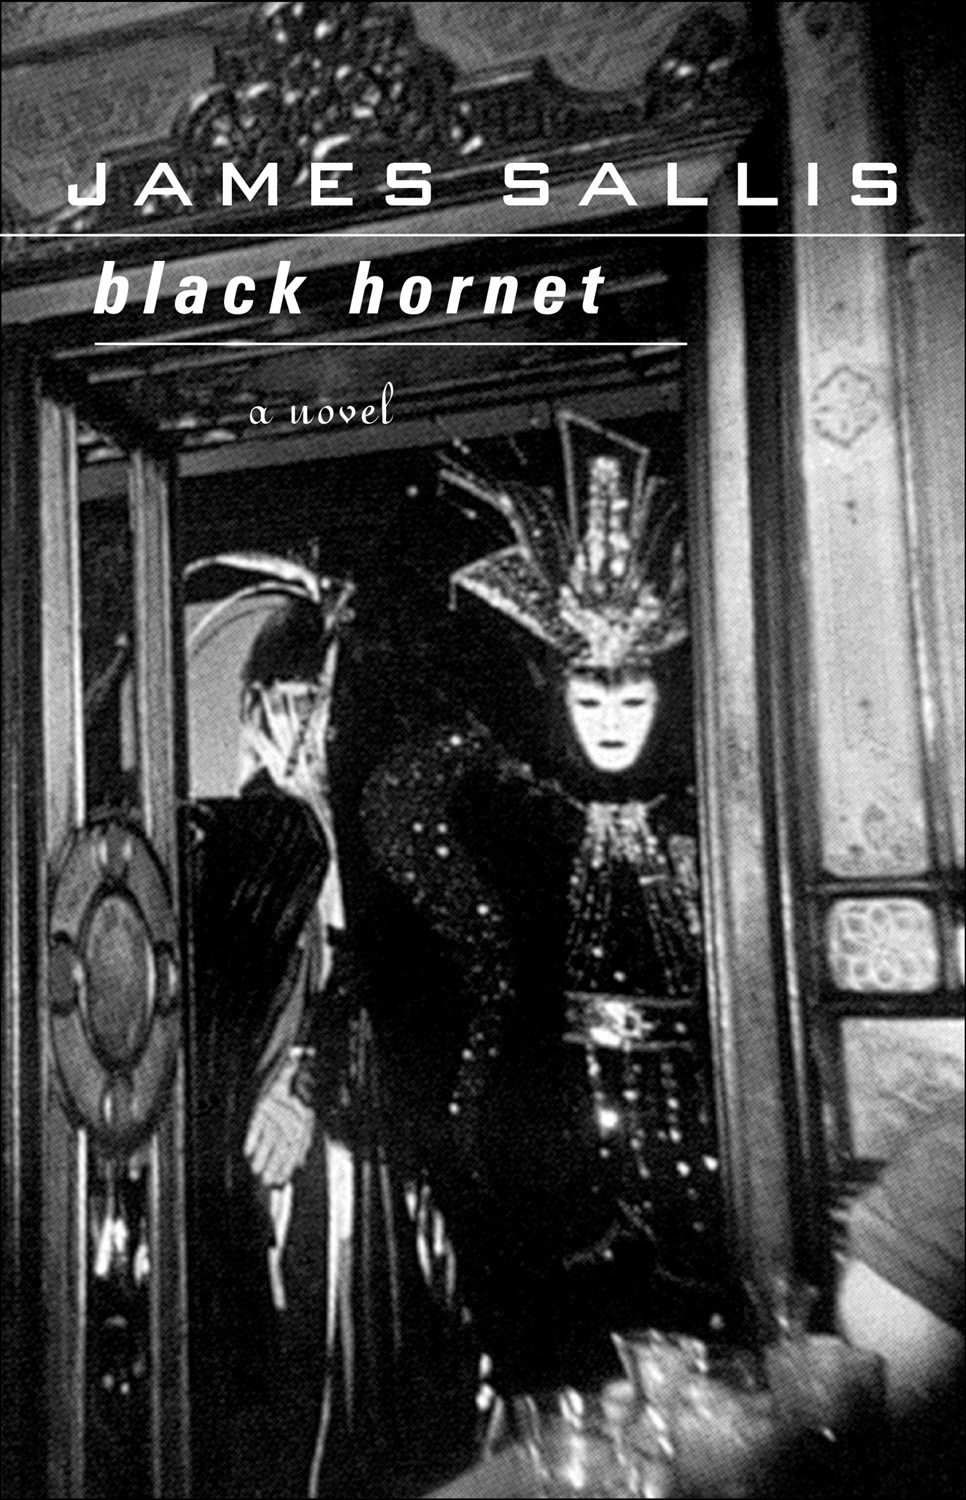 Cover for the US reissue of Black Hornet